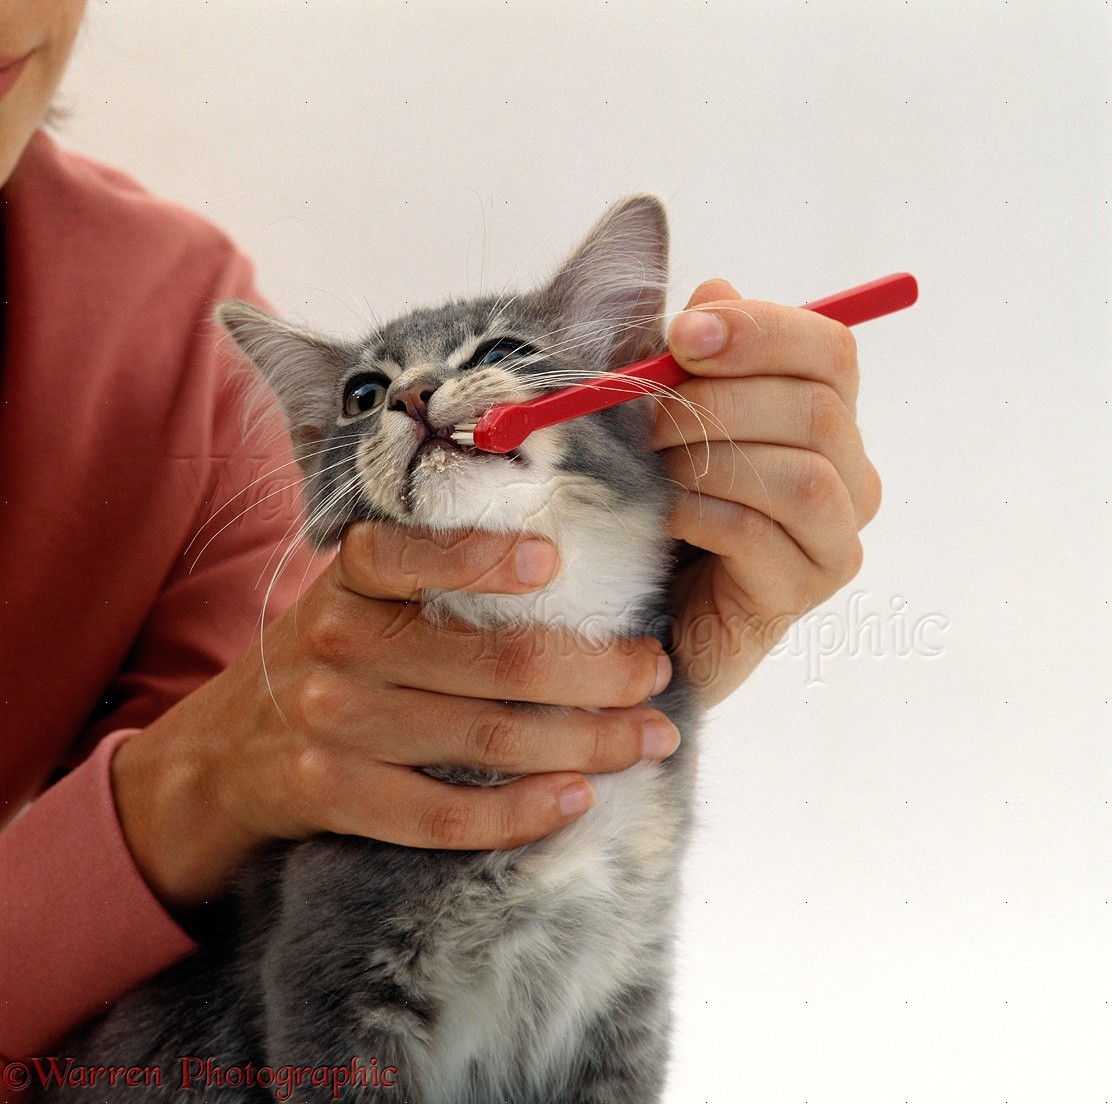 cleaning the teeth of a kitten photo wp15738